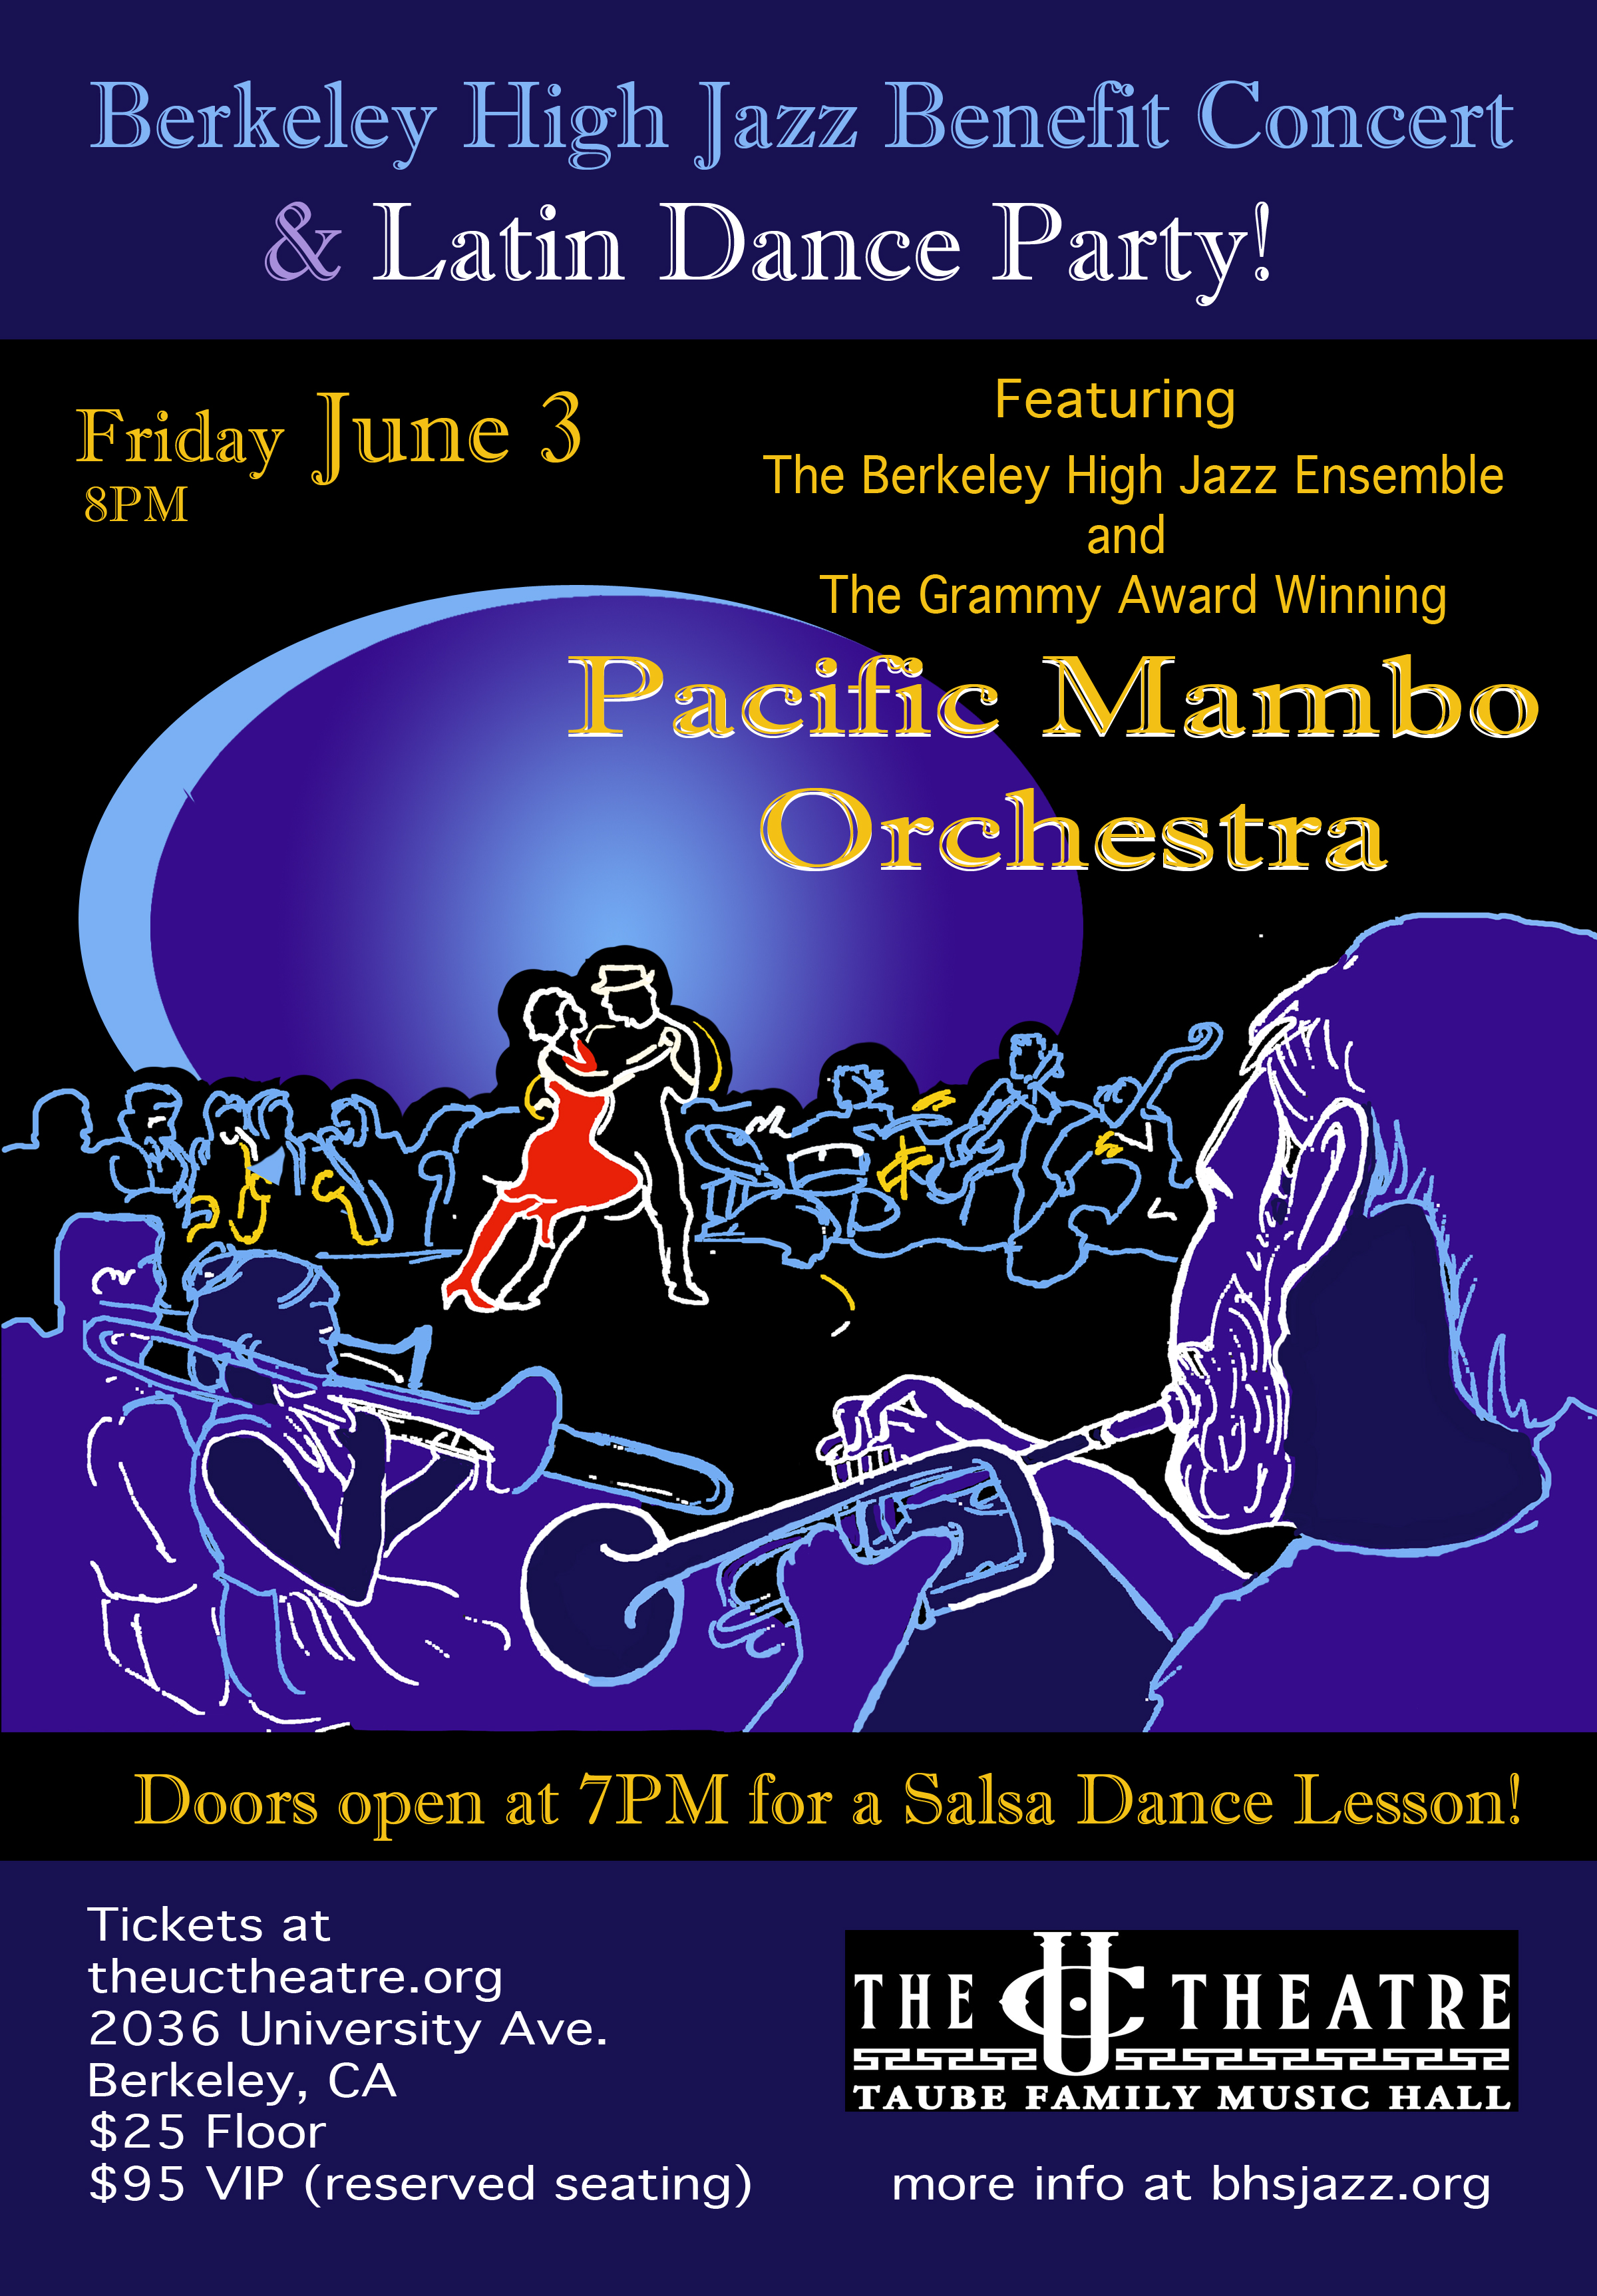 Pacific Mambo Orchestra Benfit Poster